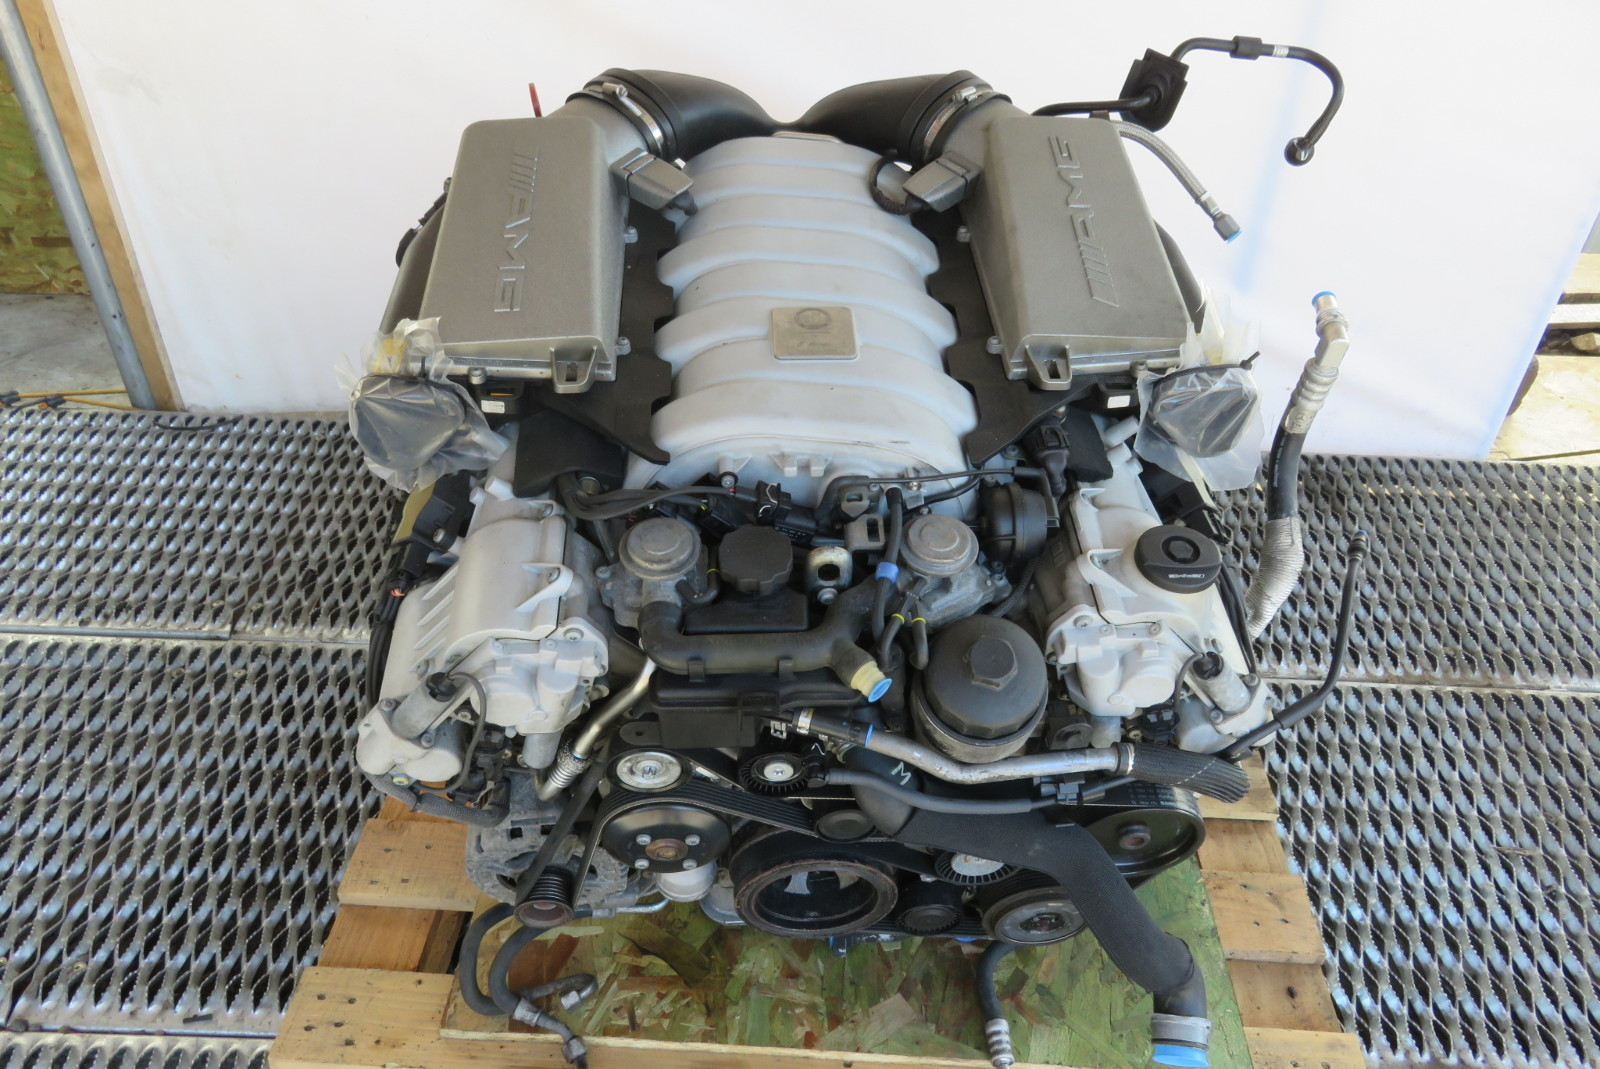 07 Mercedes W211 E63 Engine Motor V8 Amg 63 Video Inside Db165553 moreover Kess Ecu Remapping Alientech also Used Land Rover Freelander 2 Review Pictures besides Used Land Rover Defender Buying Guide Gallery additionally Mercedes S500 Amg 2014 Pictures. on used land rover